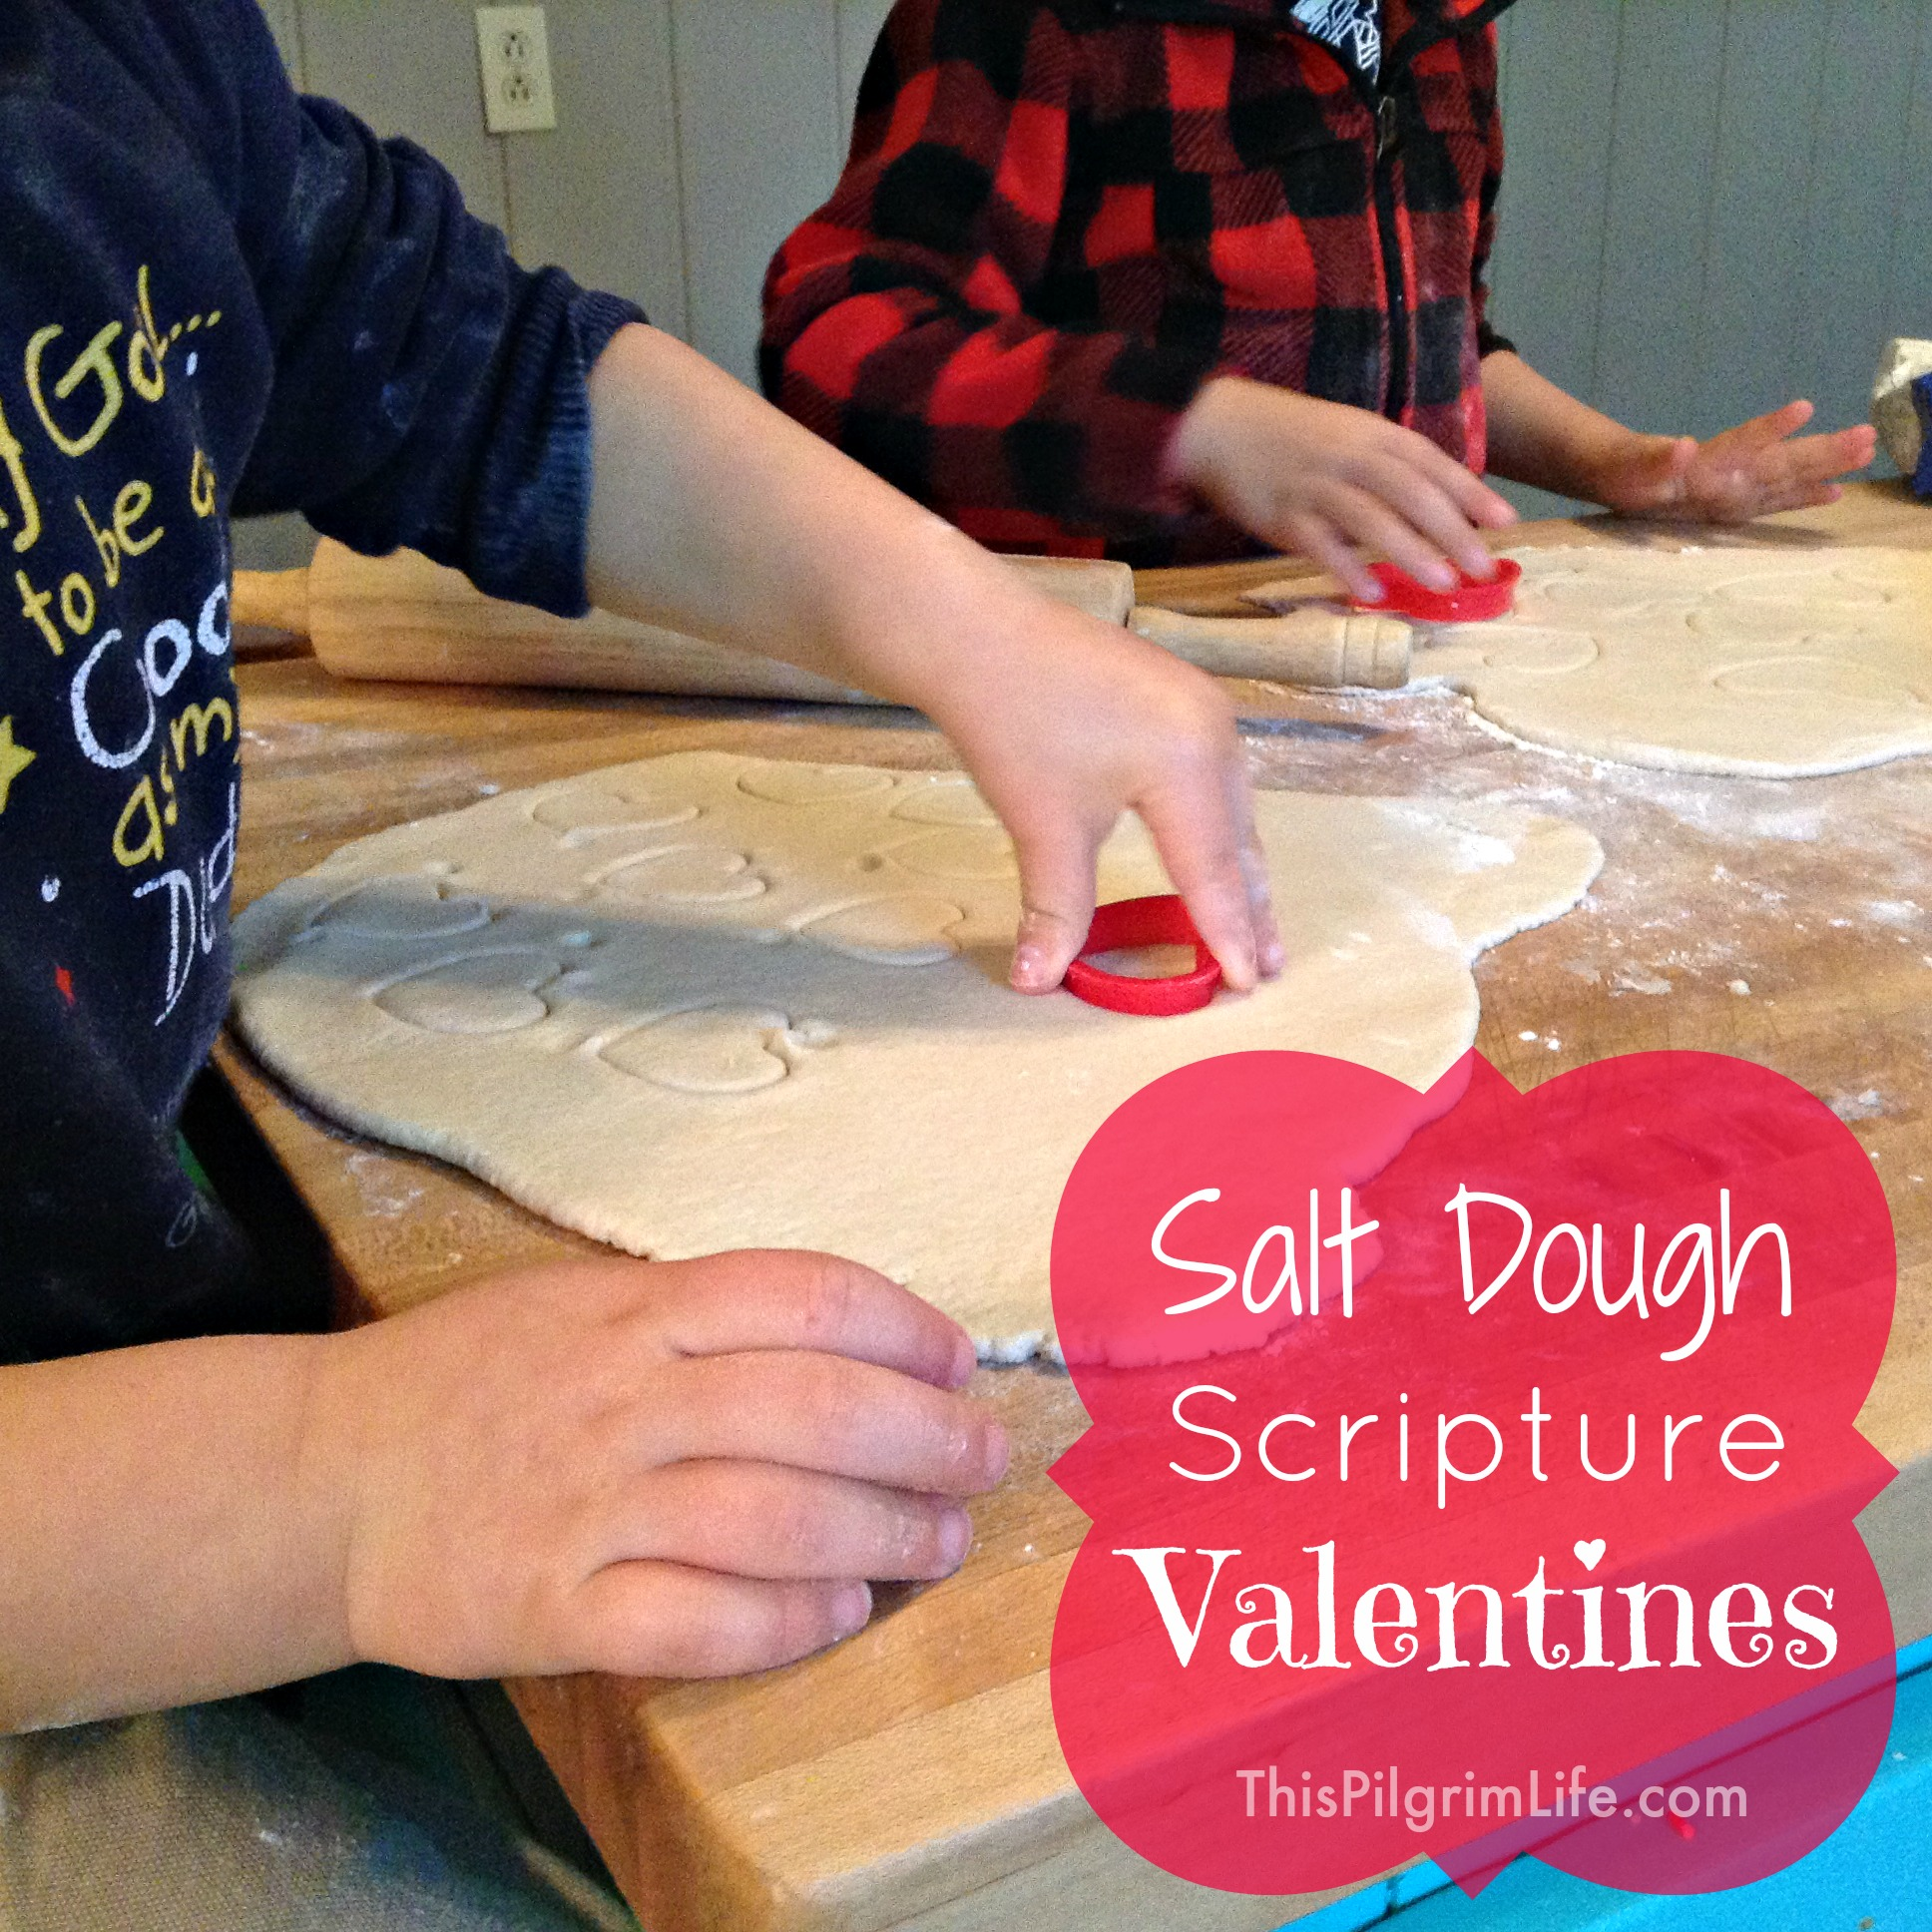 Salt Dough Scripture Valentines